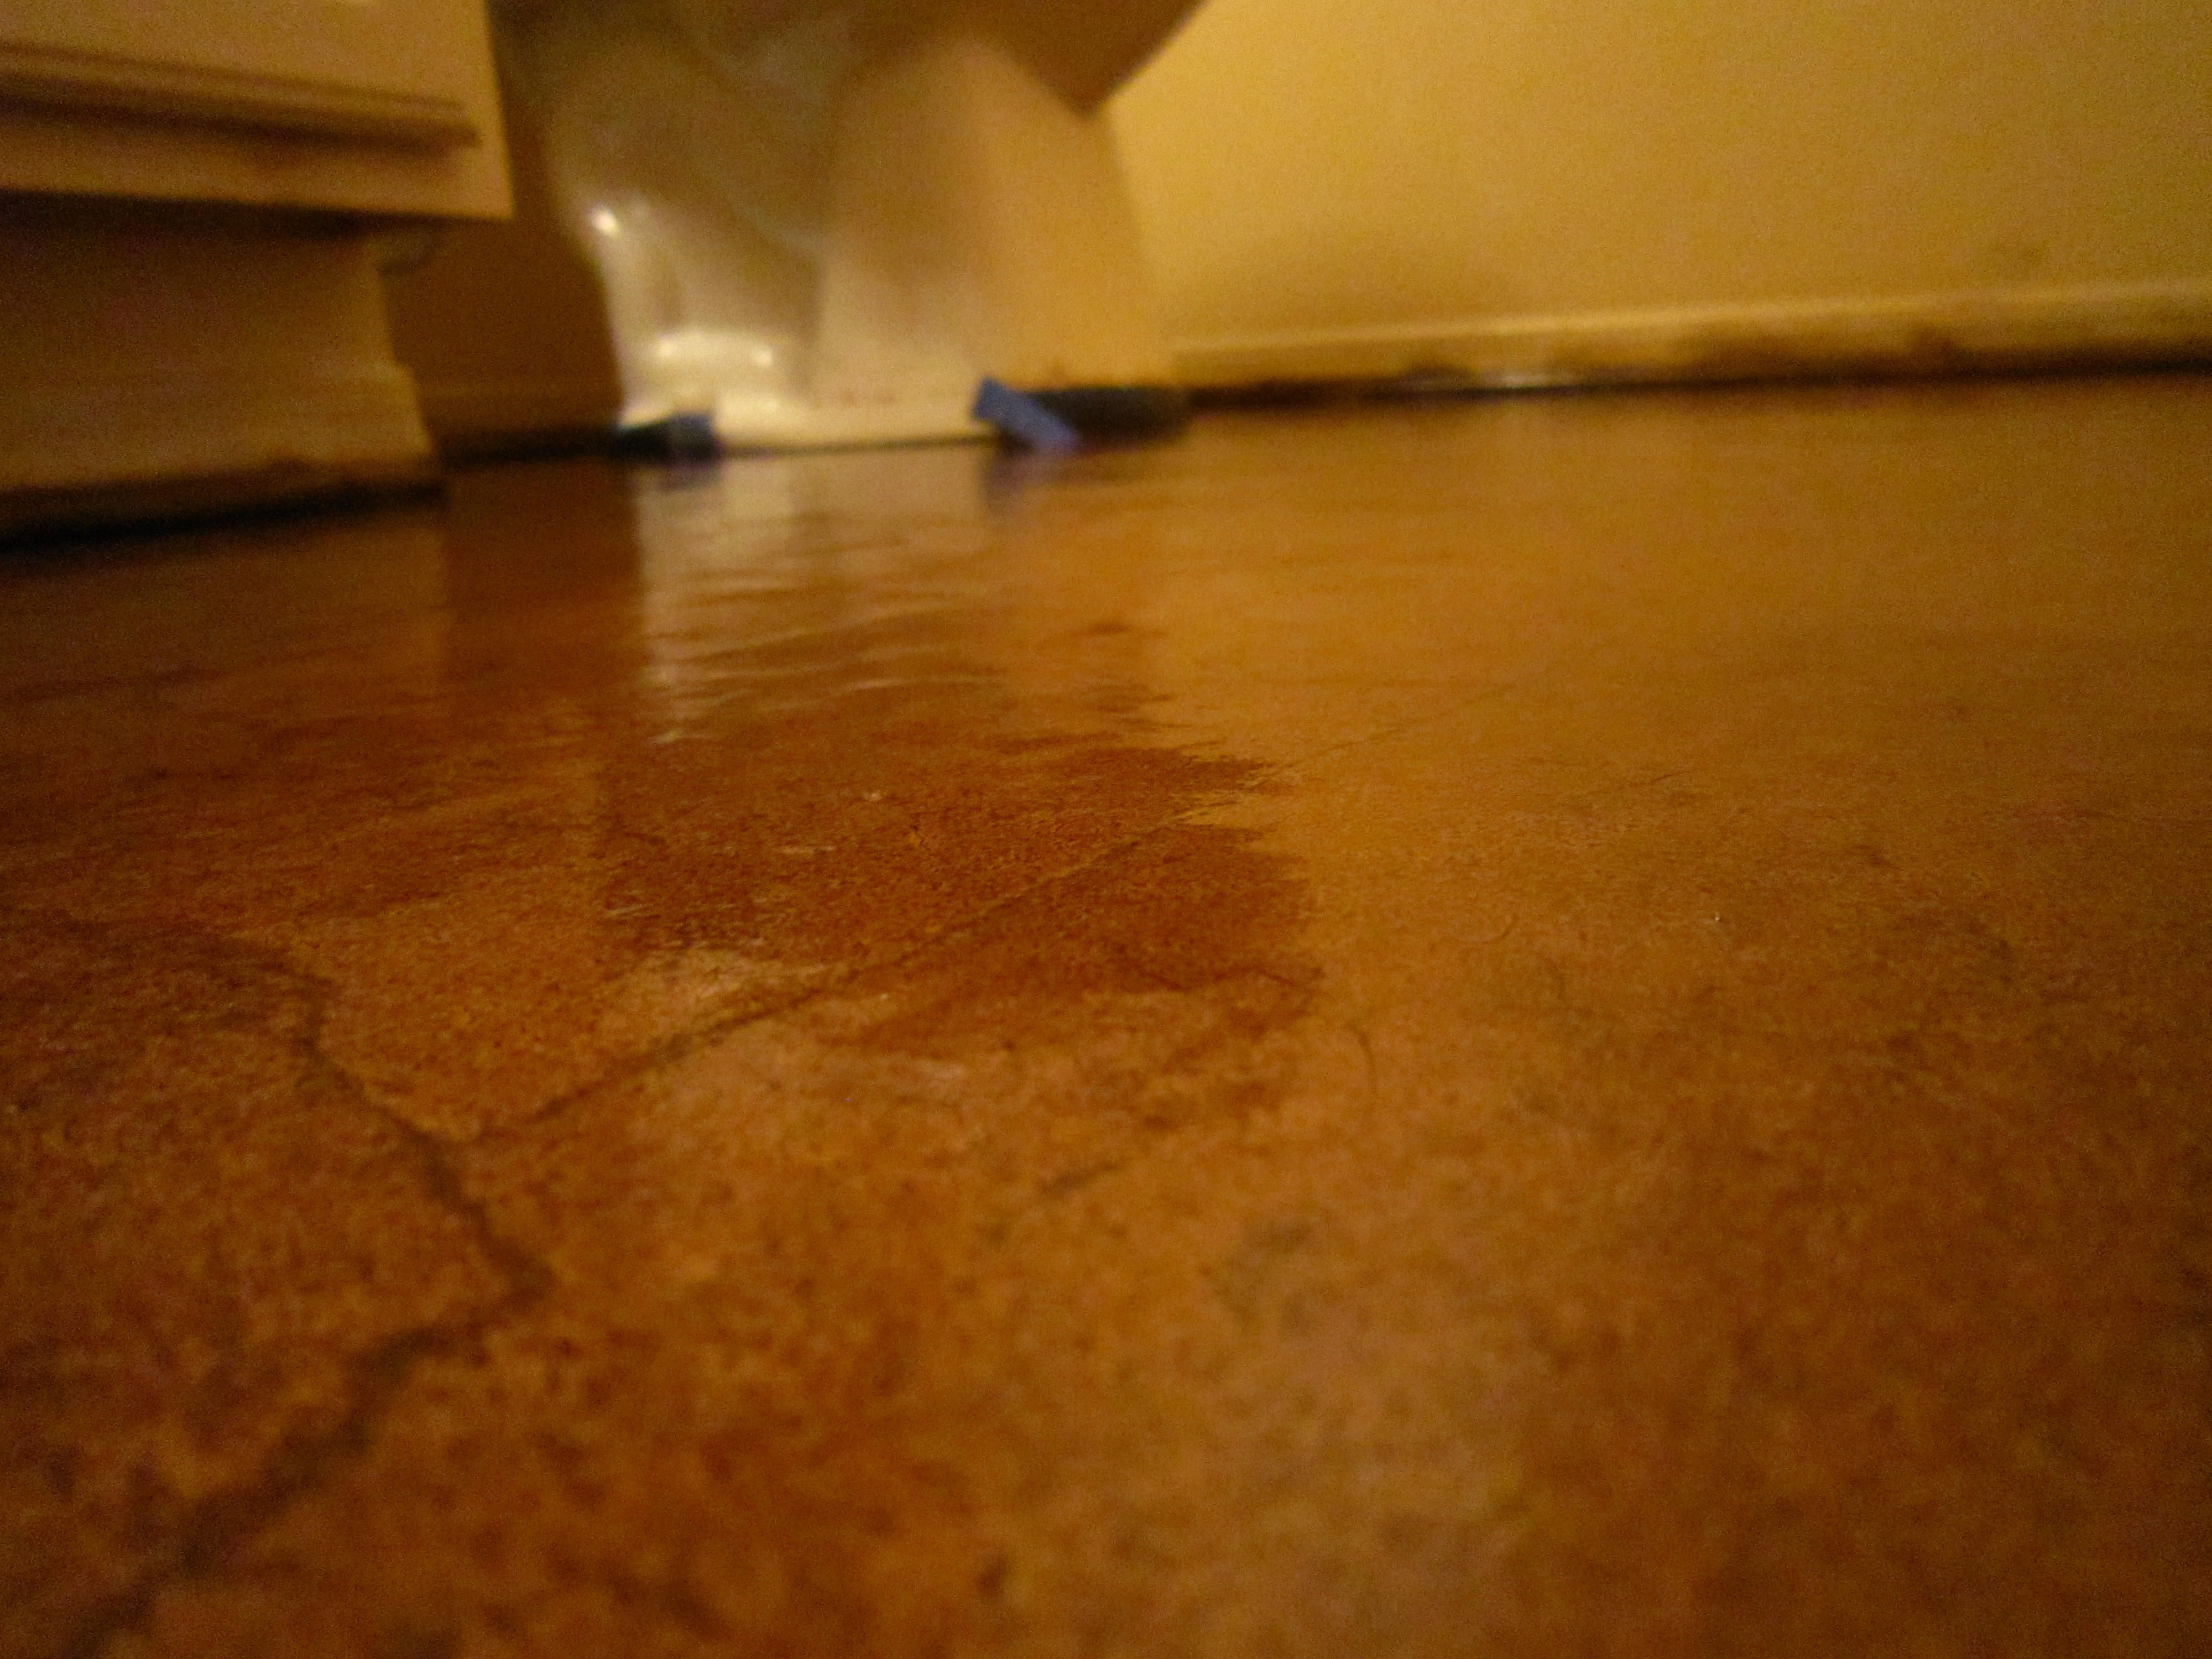 Diy Stained Brown Paper Floor Awesomeness Under 30 Do It Yourself Hardwood Laminate Floor Alternative Diy Flooring Diy Staining Paper Flooring